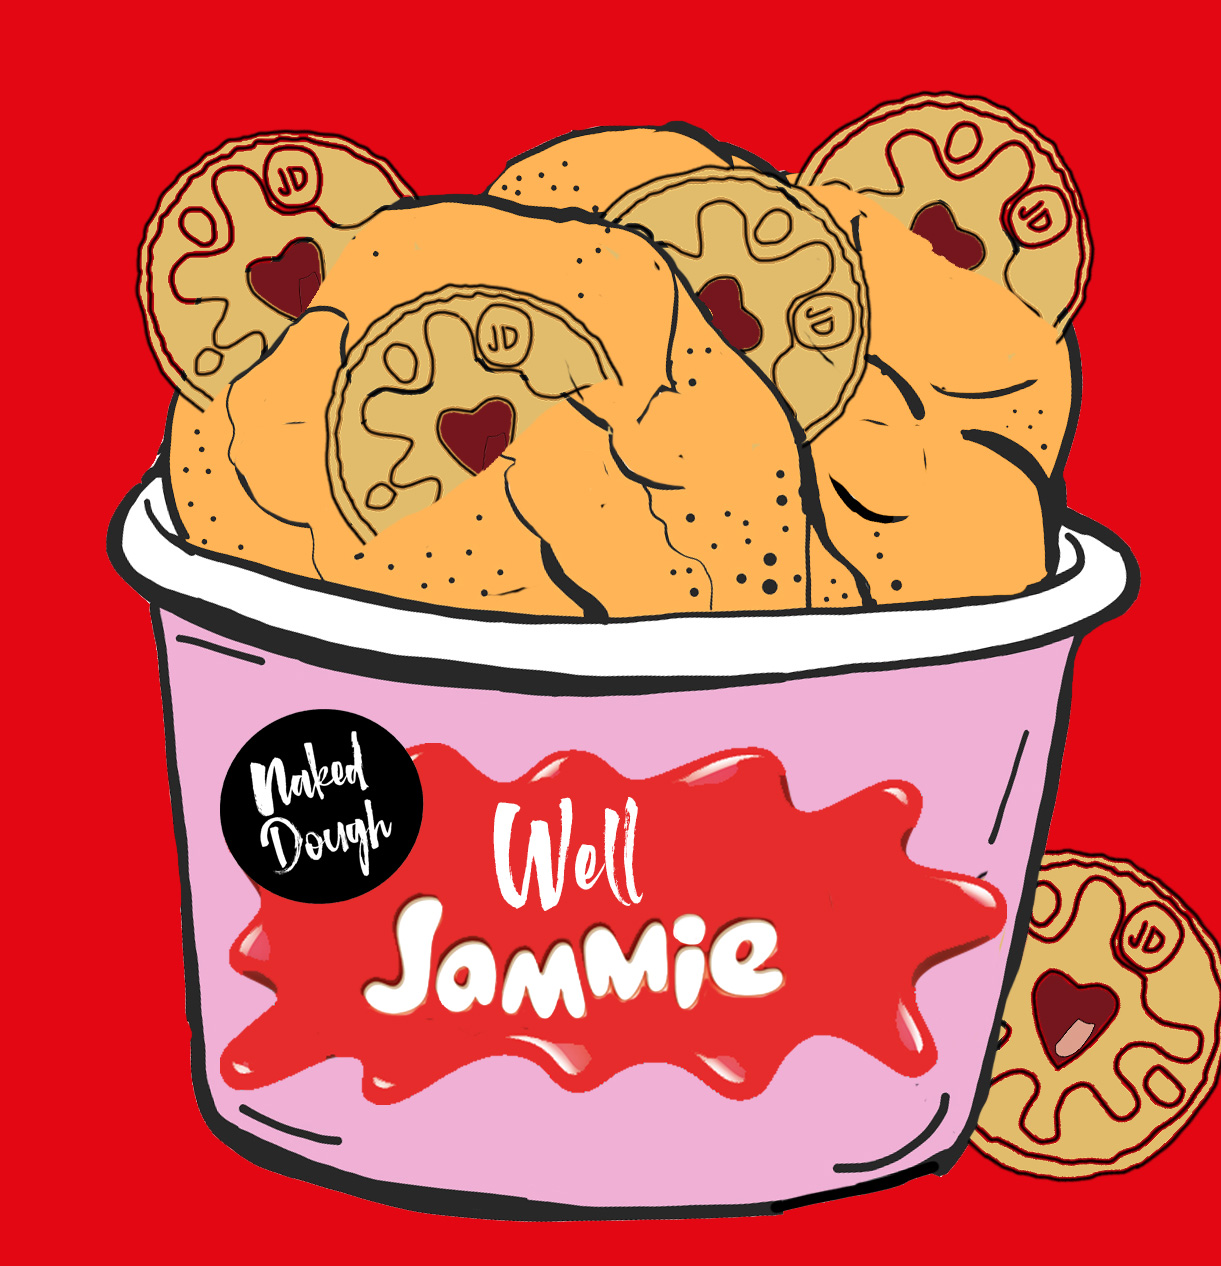 Well Jammie cookie dough.